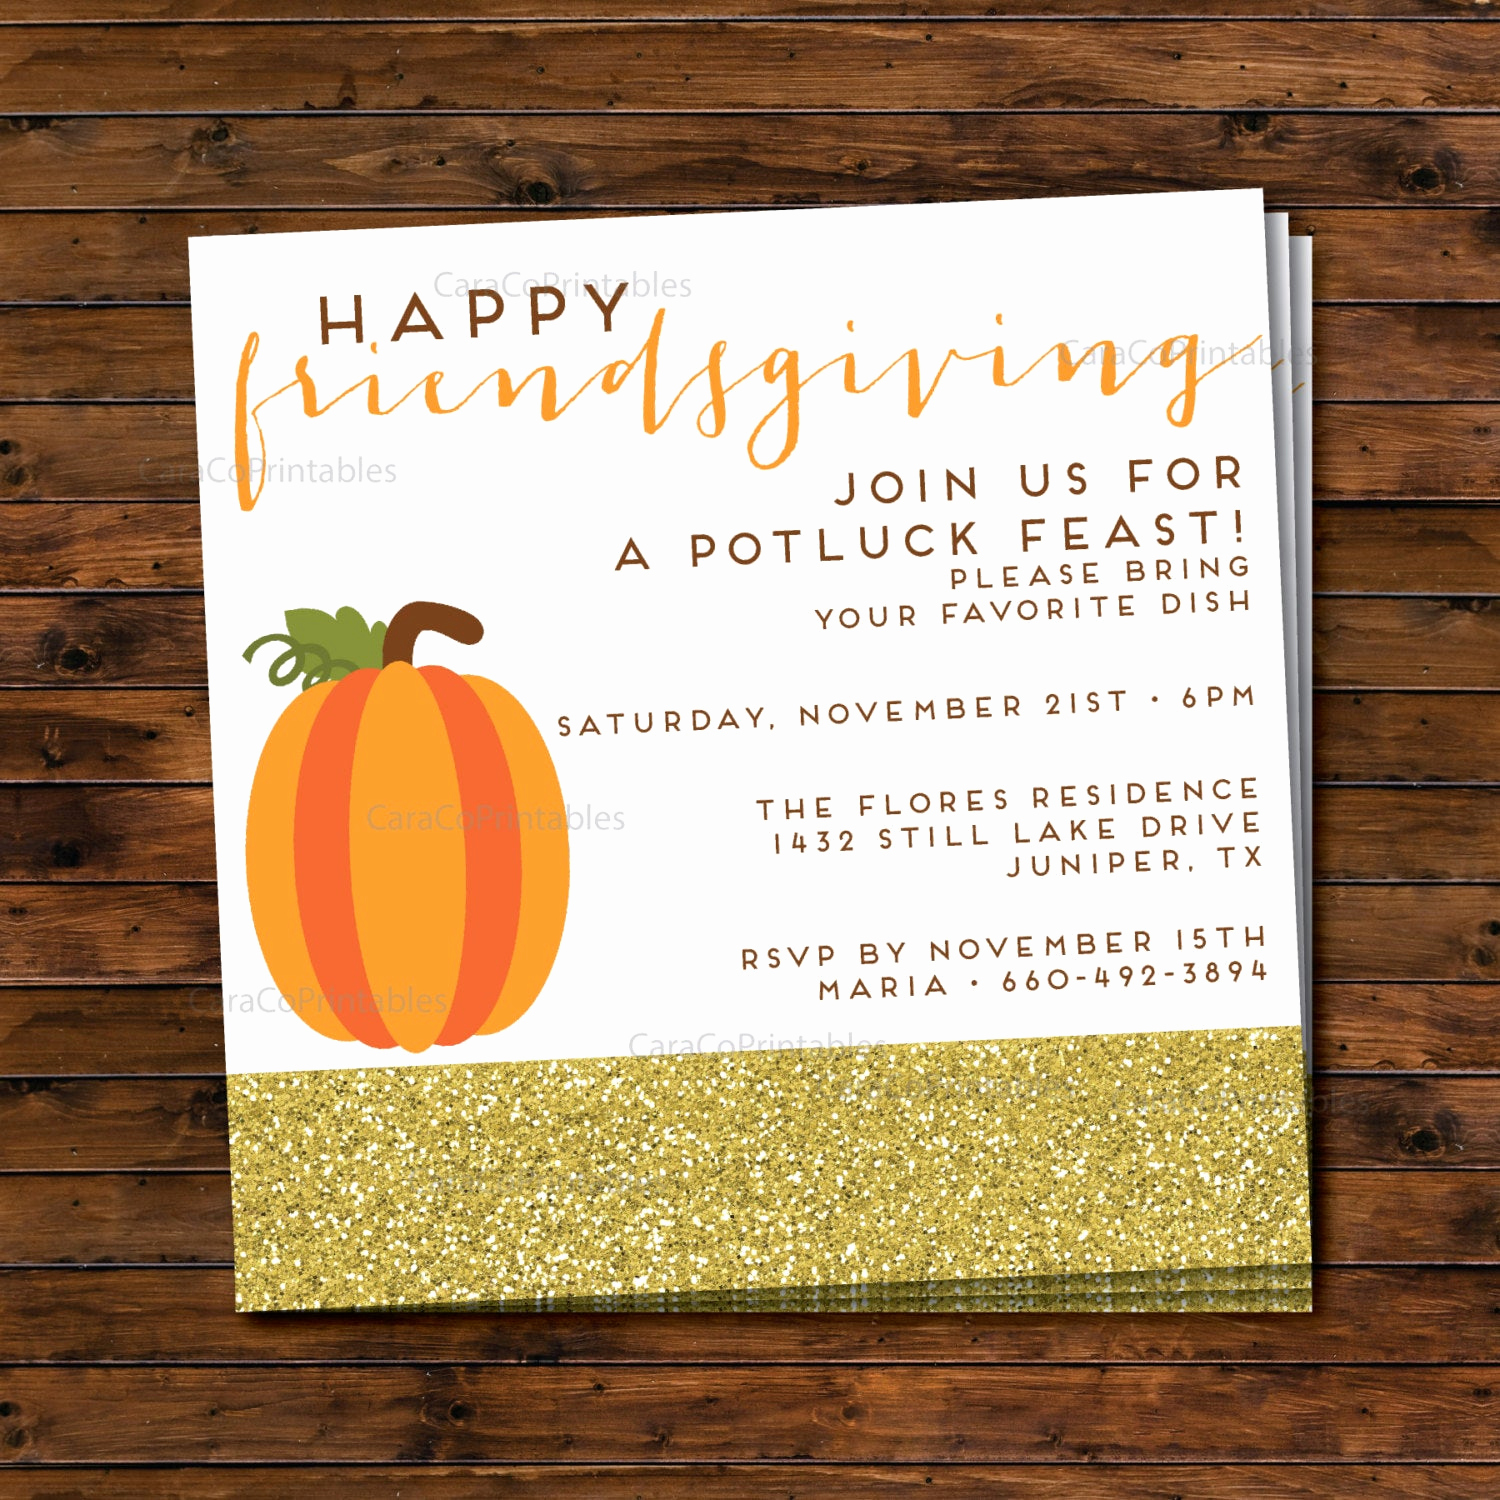 Potluck Invitation Template Free Printable Best Of Friendsgiving Thanksgiving Potluck Dinner Party Invitation